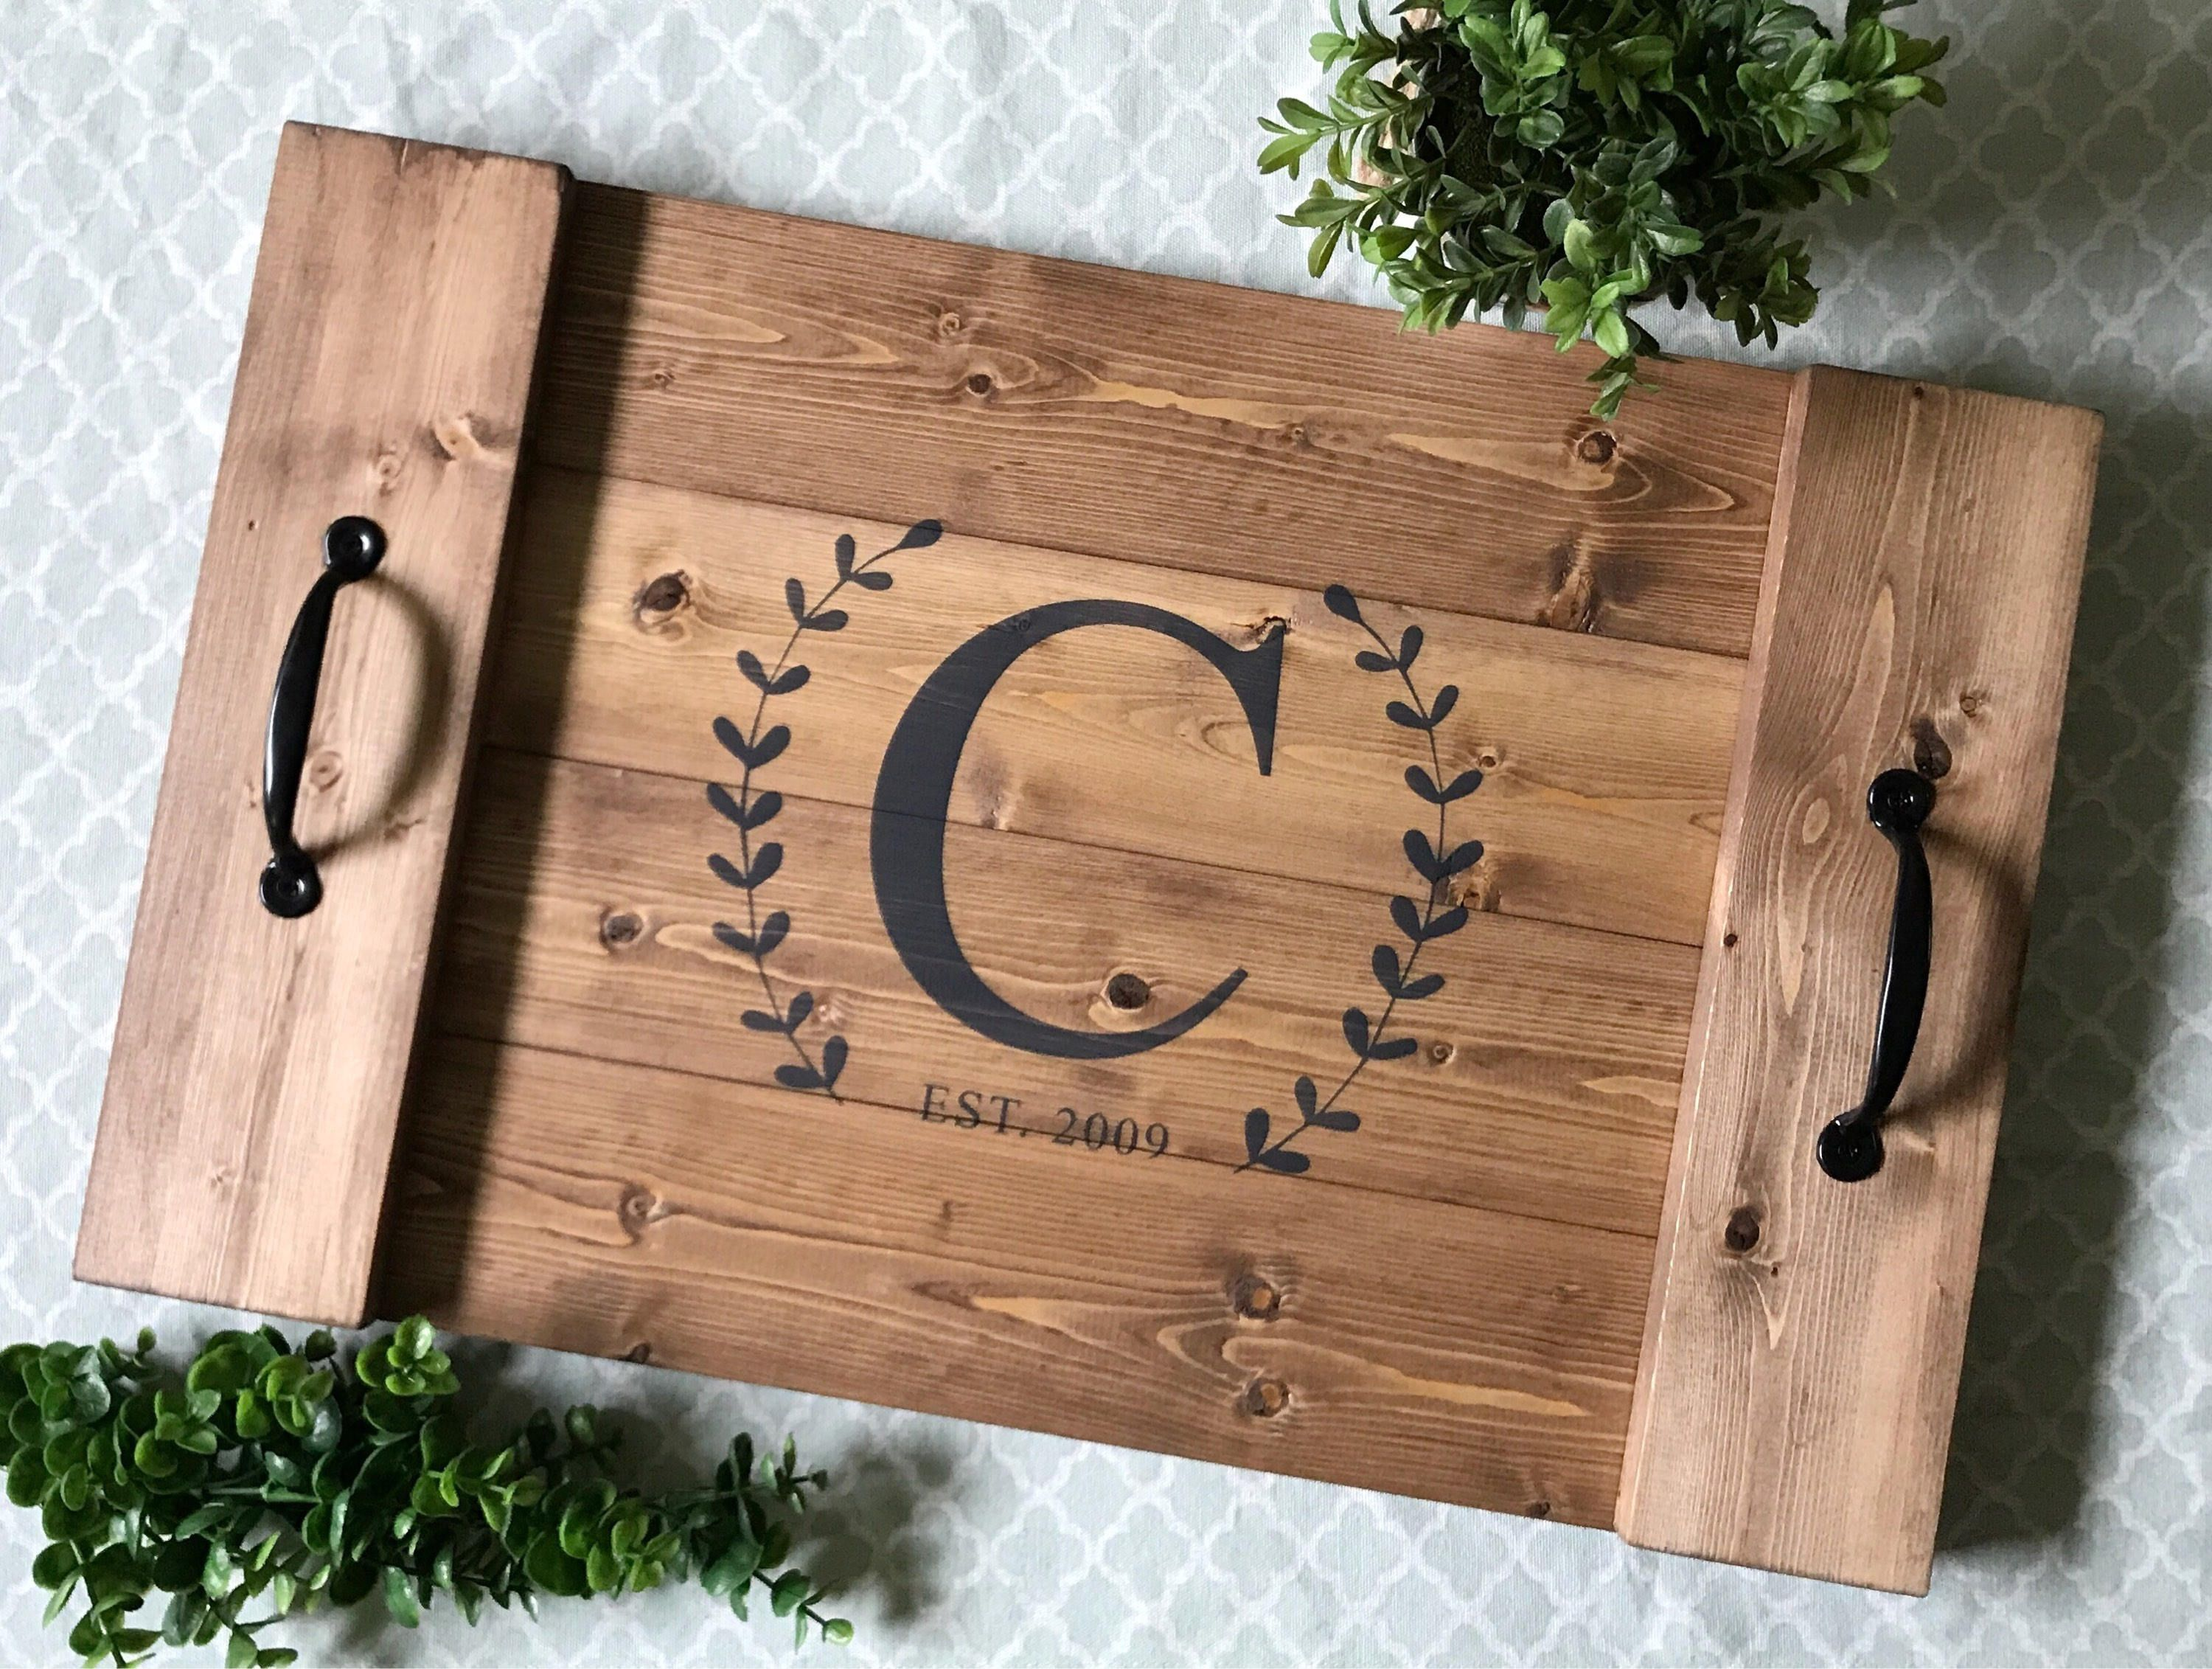 personalized serving tray wood serving tray wooden serving tray